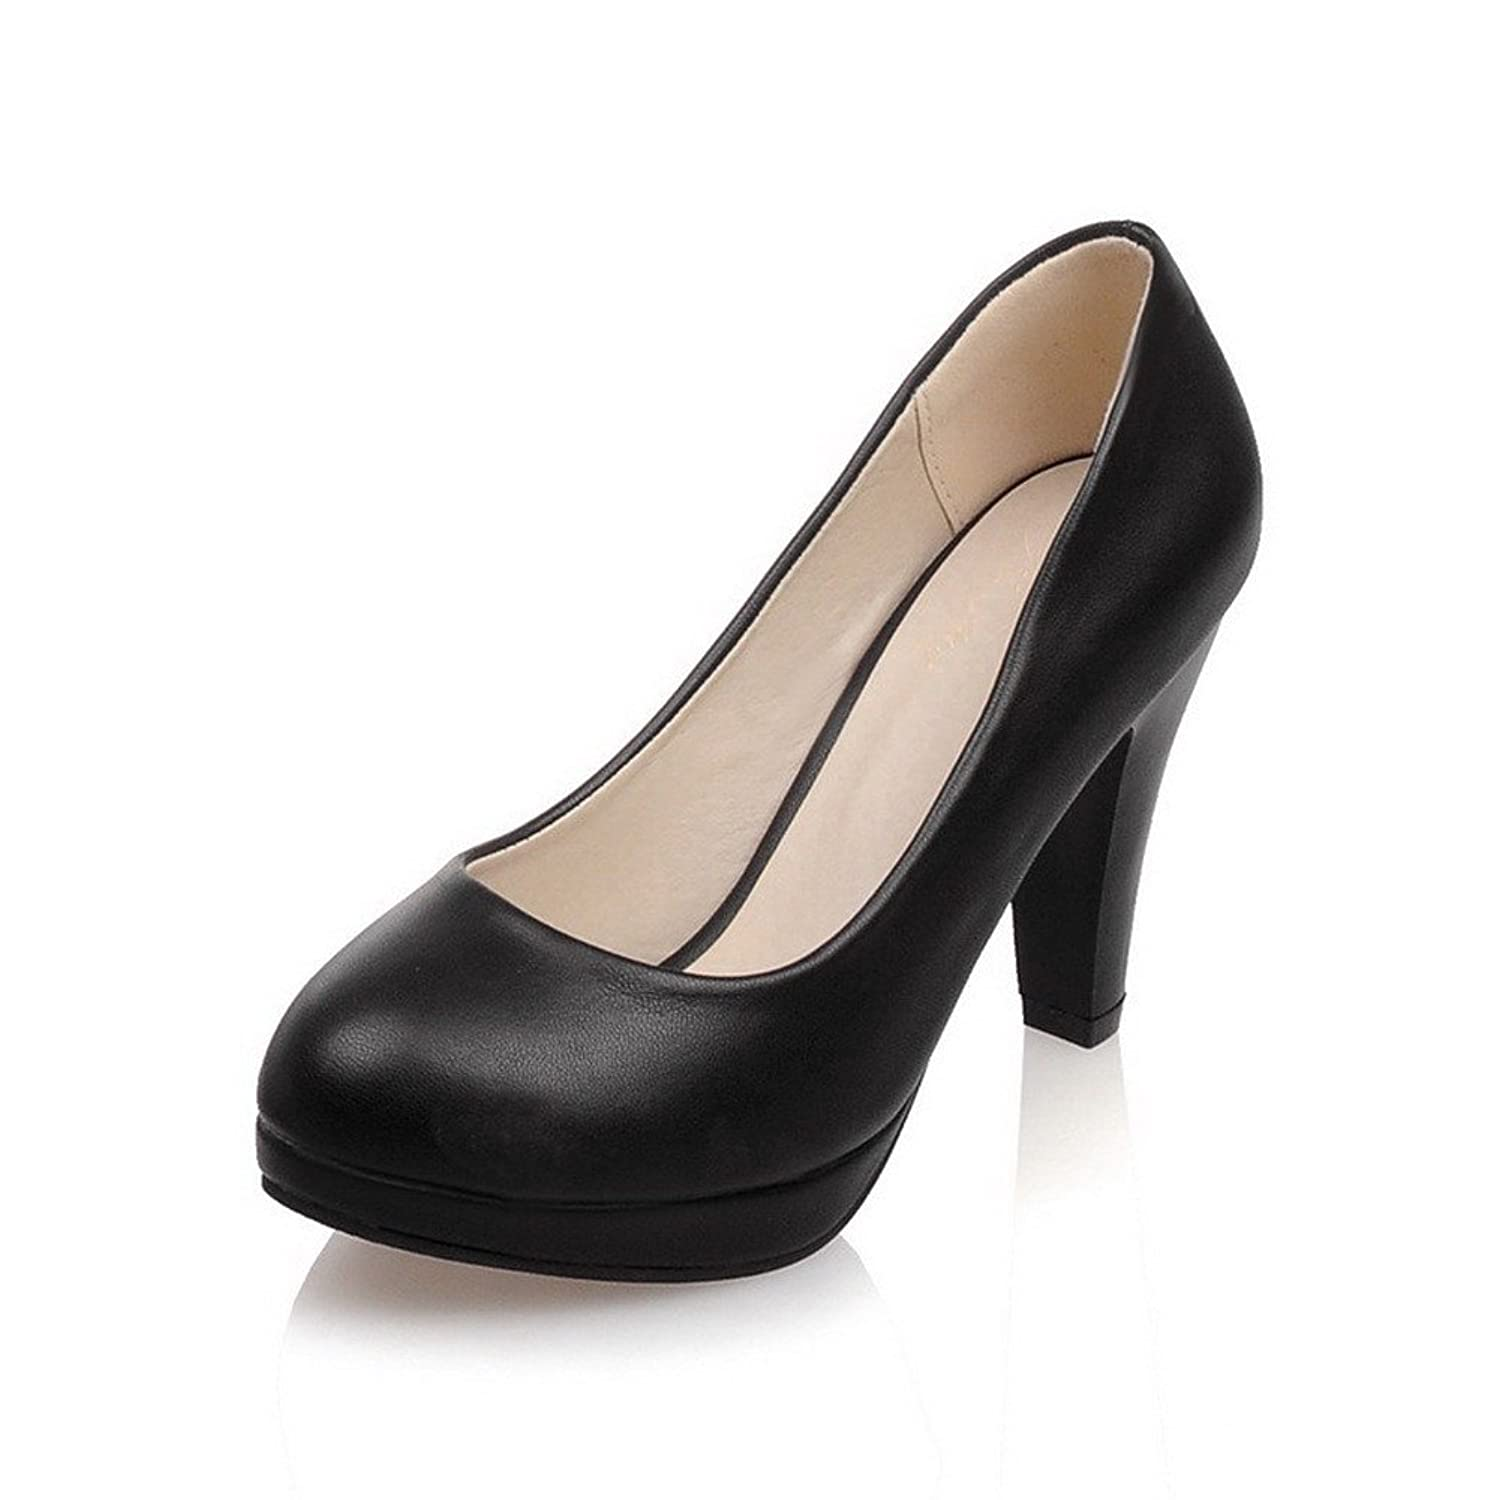 AmoonyFashion Women's PU Solid Pull-on Round Closed Toe High Heels Pumps Shoes